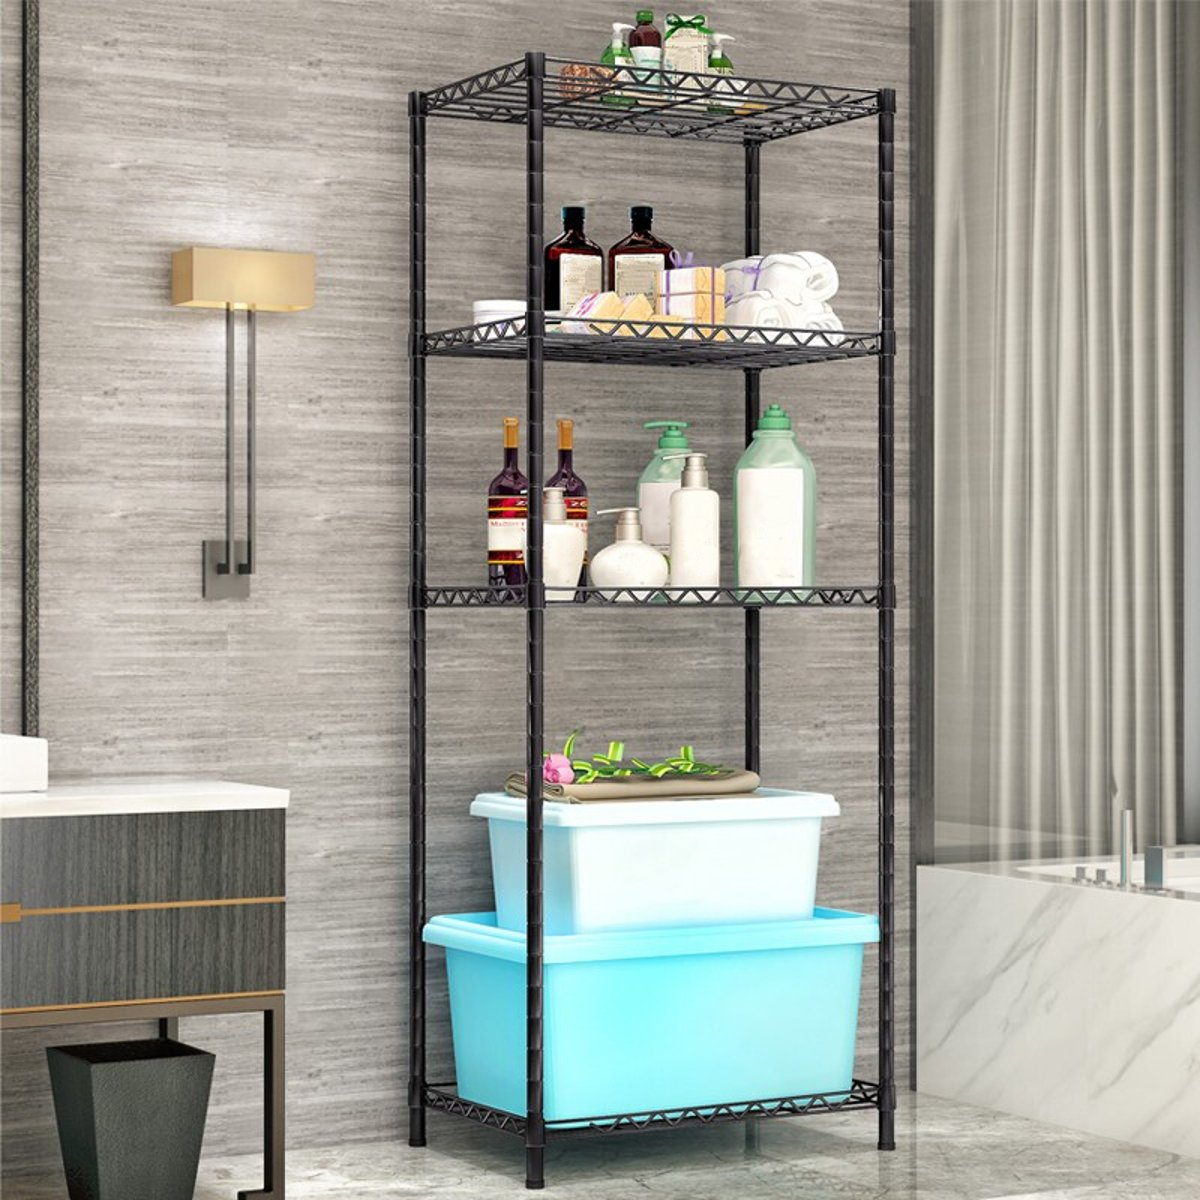 4-Tier Steel Wire Shelving Unit Organizer Rack Holder Home Kitchen Storage Shelf Bookshelf Storage Books Display Adjustable